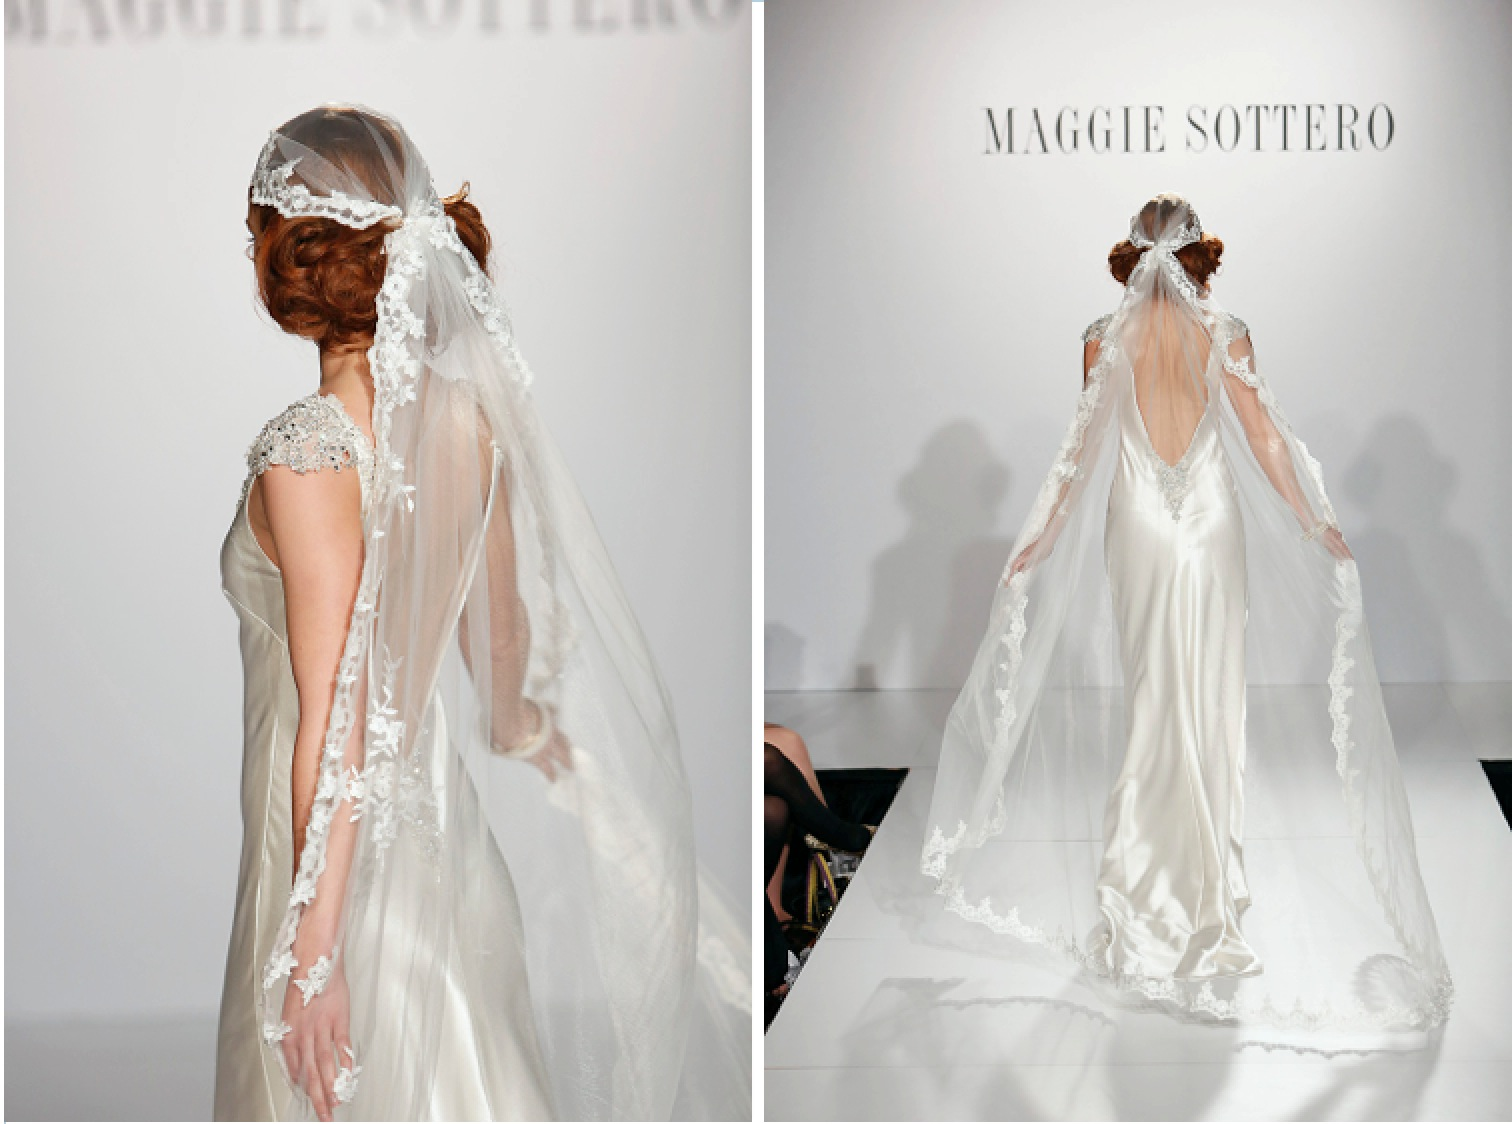 Wedding Dresses, Veils, Hollywood Glam Wedding Dresses, Fashion, Glam Weddings, Maggie Sottero, Art Deco Weddings